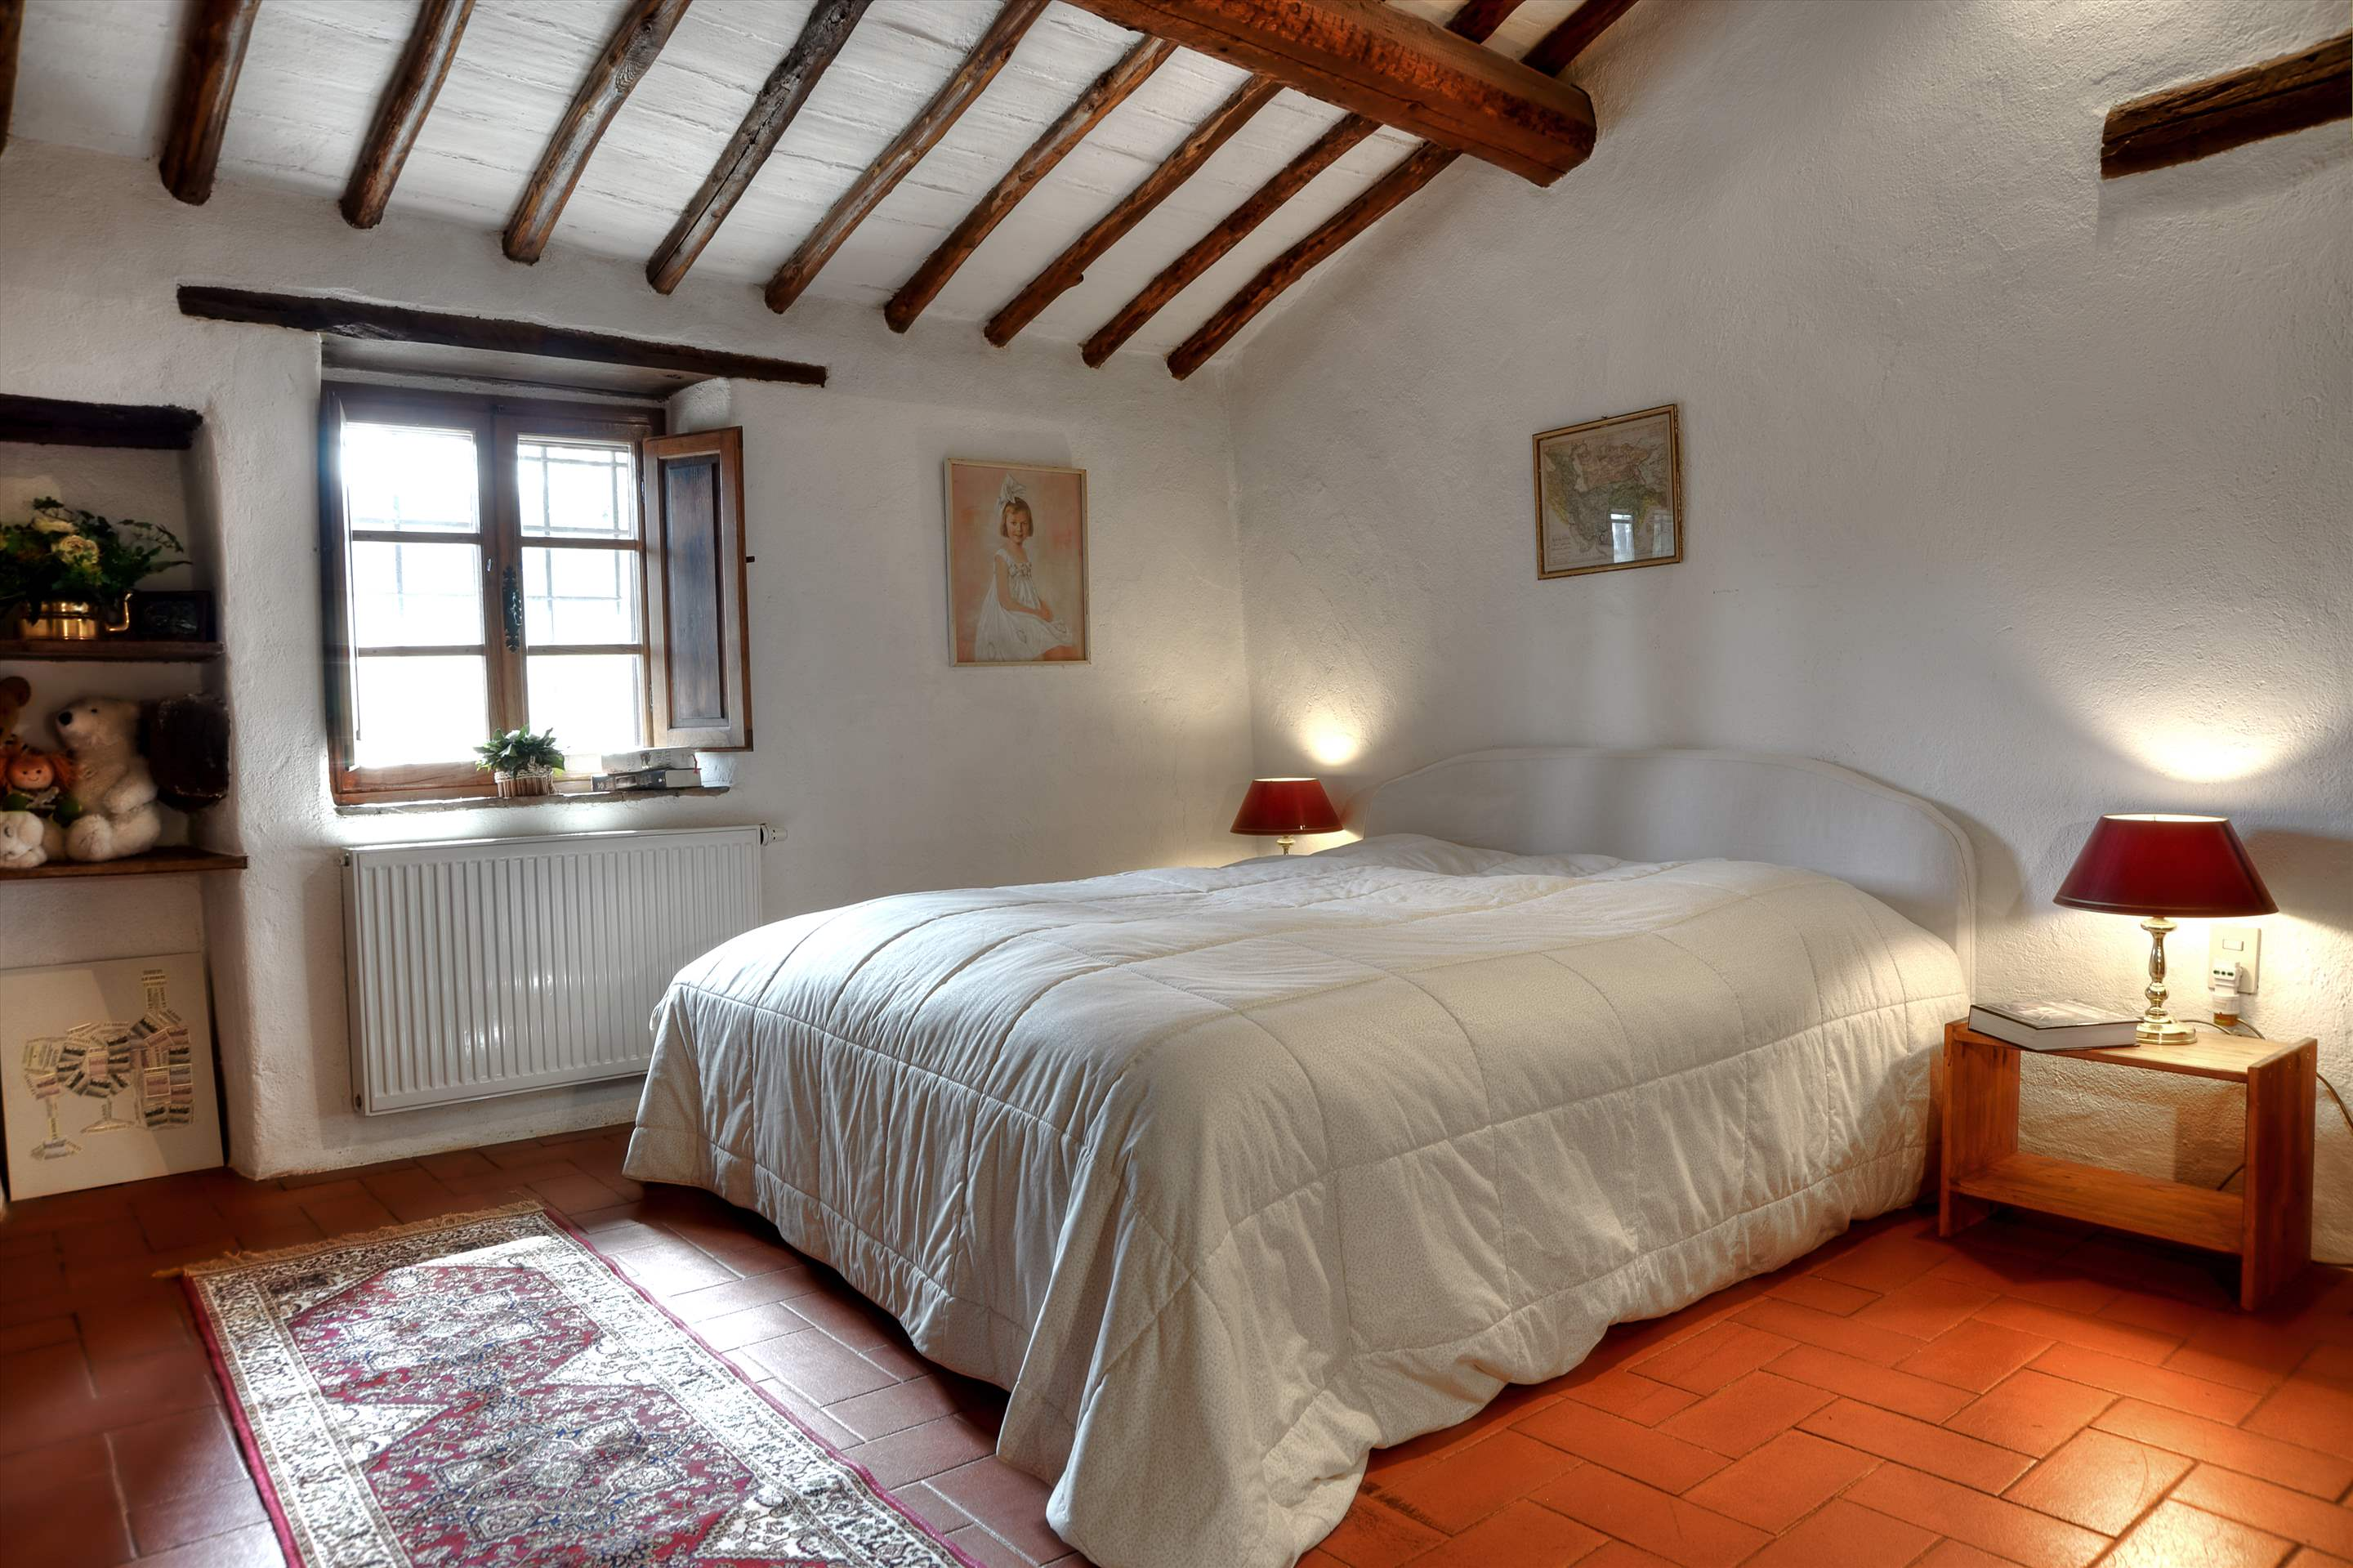 Villa Campana, 5 bedroom villa in Chianti & Countryside, Tuscany Photo #16